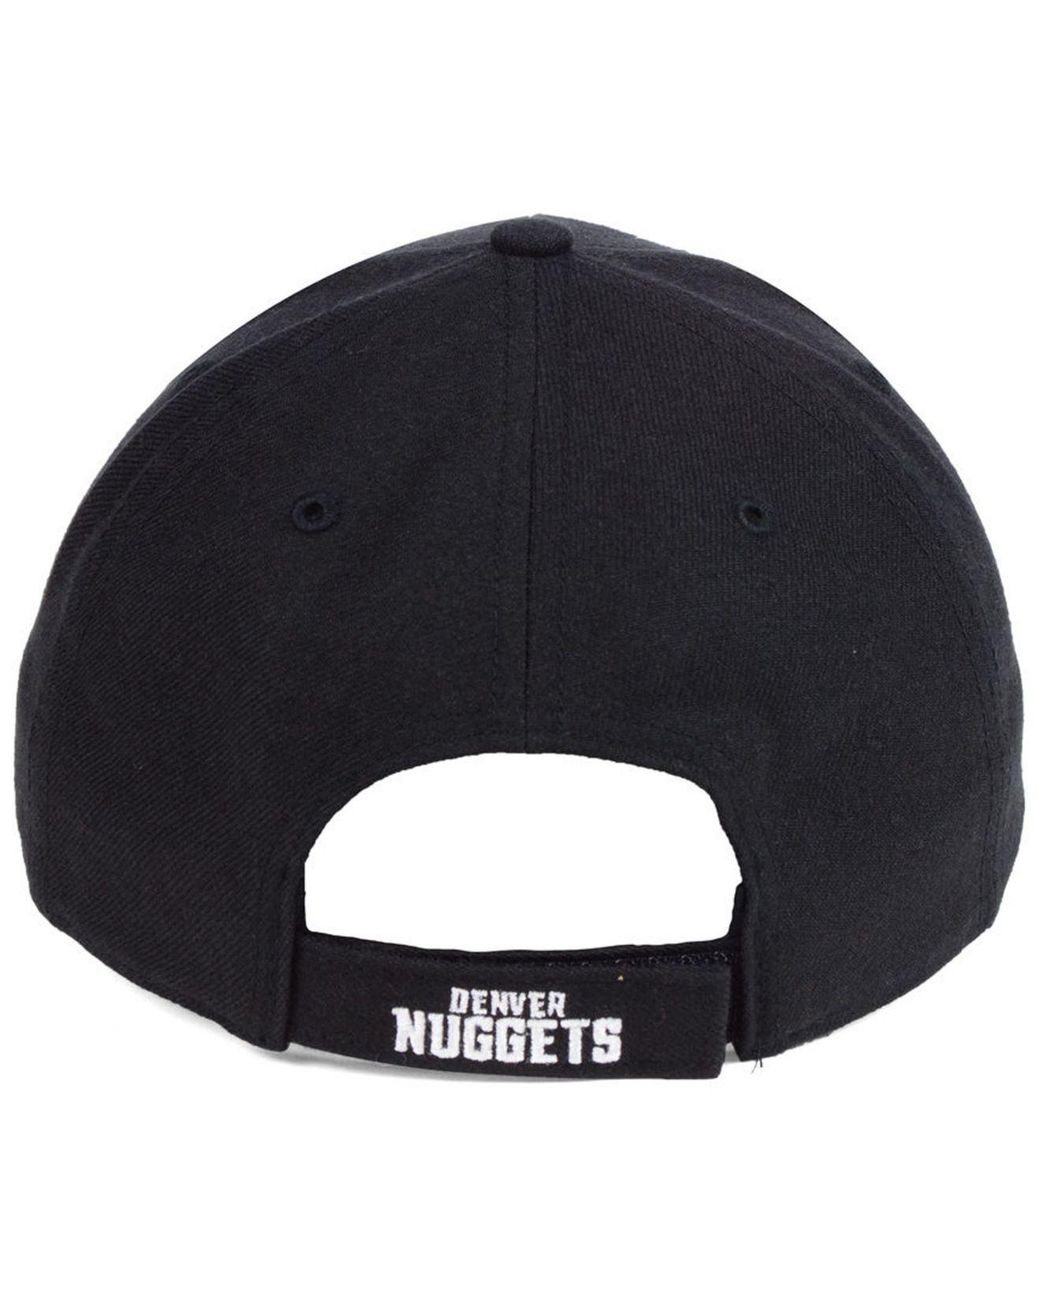 exquisite style look good shoes sale quality 47 Brand Synthetic Denver Nuggets Black White Mvp Cap for Men - Lyst